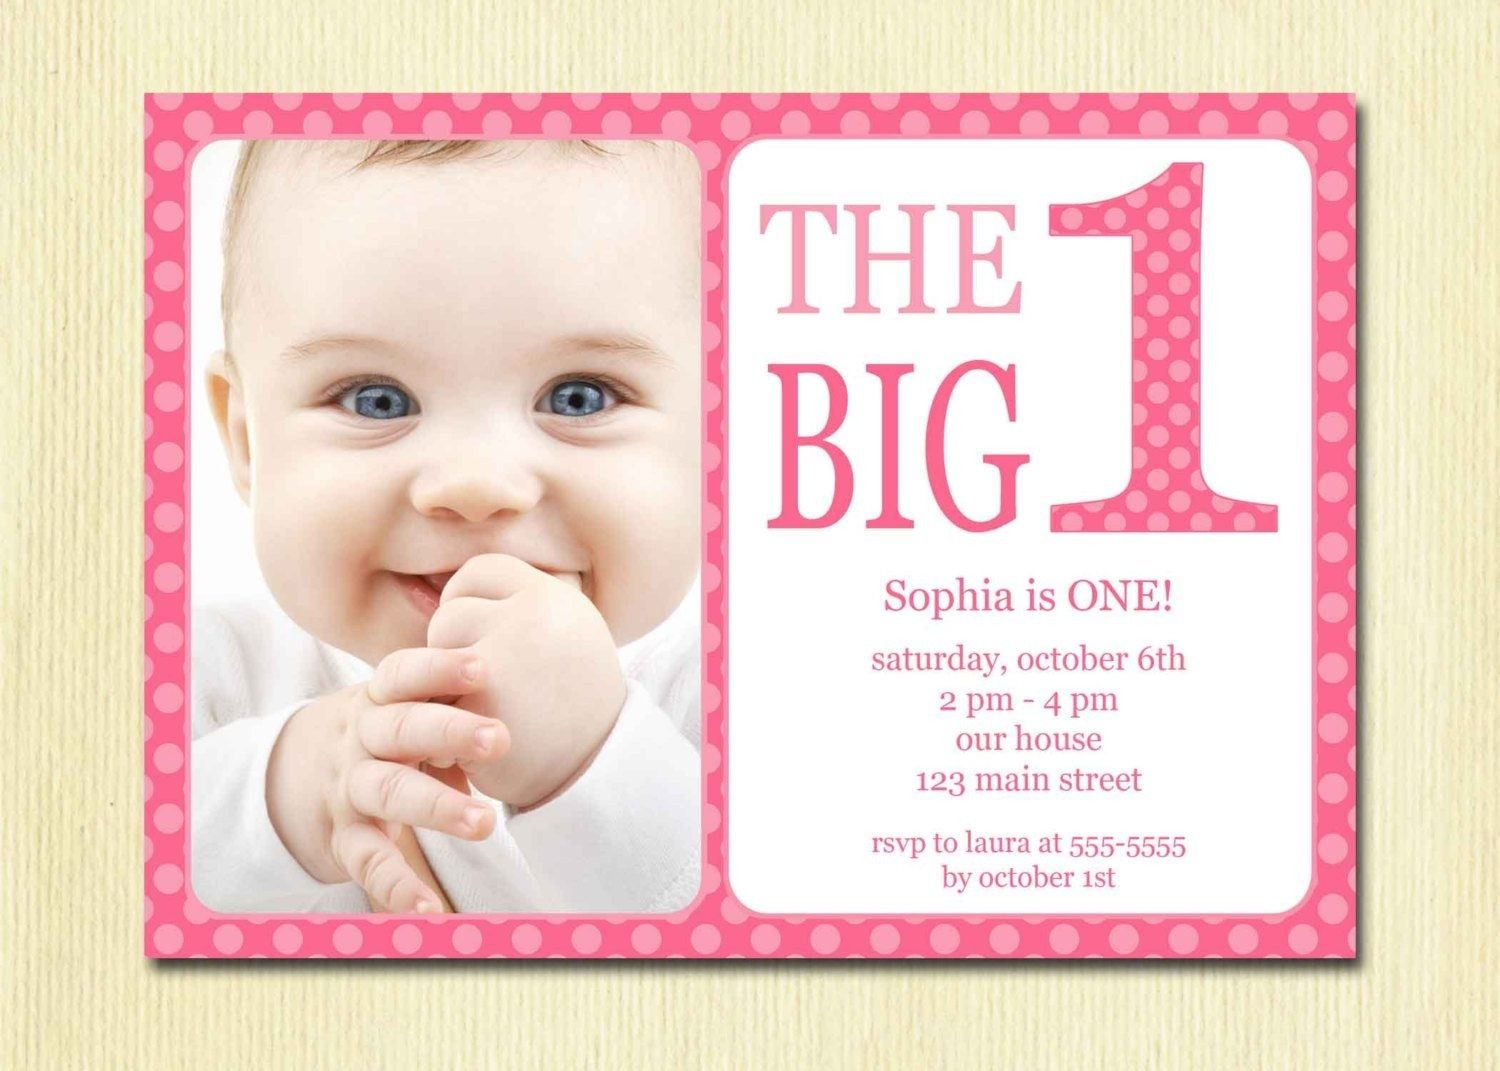 baby first birthday invitation templates free ; birthday-invitation-templates-for-1st-birthday-inspirationalnew-within-1st-birthday-invitation-templates-free-printable